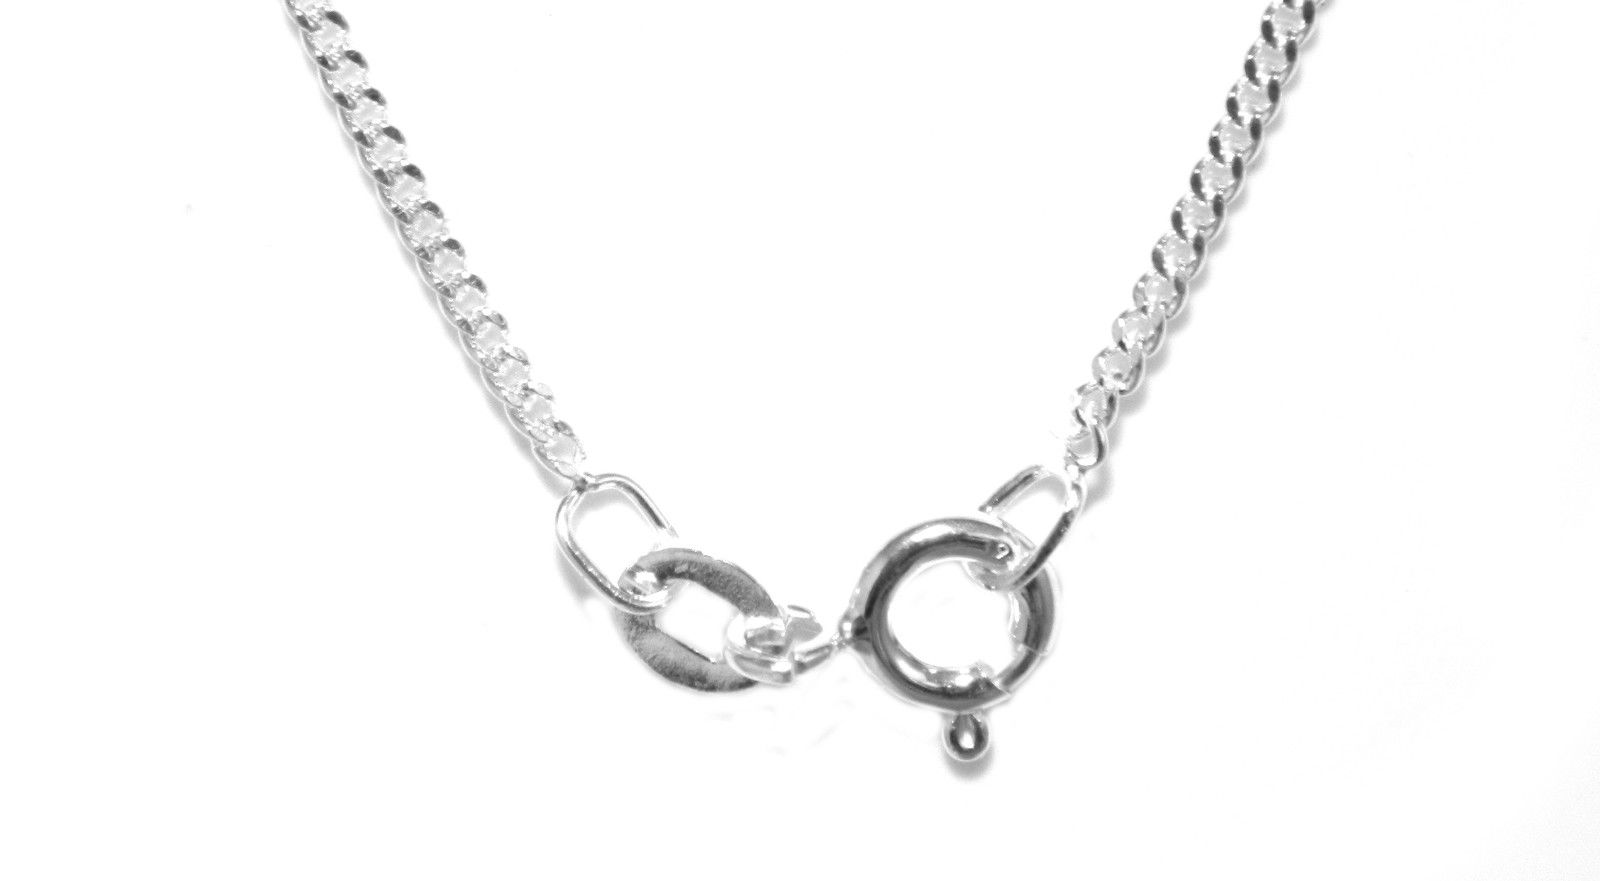 20 Inch Chain 2mm Gauge Curb Style In Sterling Silver